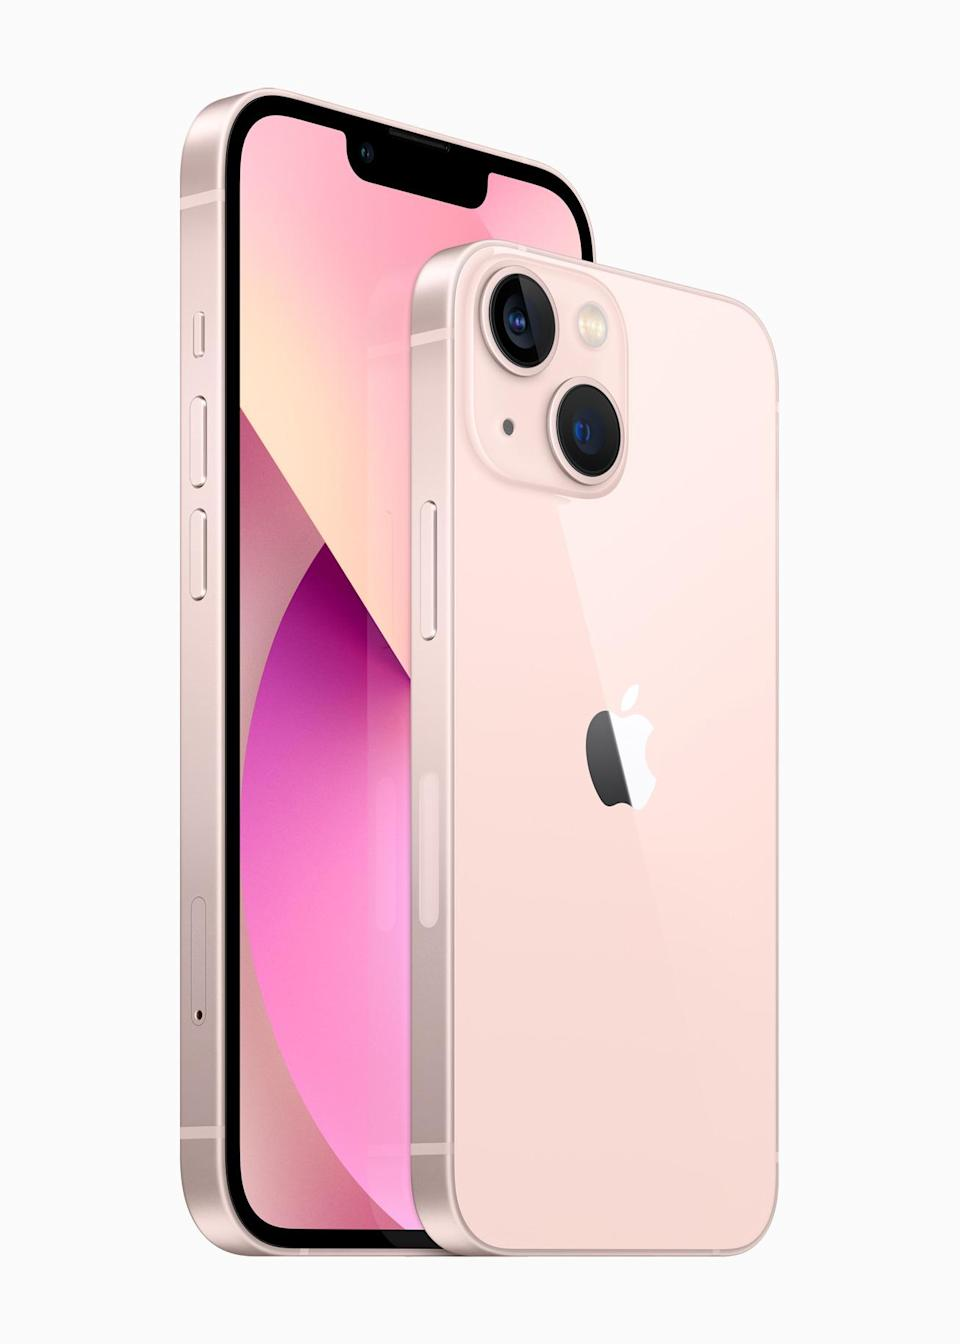 Pink is one of five new colors for the iPhone 13, which also include blue, midnight, starlight and Product (Red). - Credit: Courtesy images